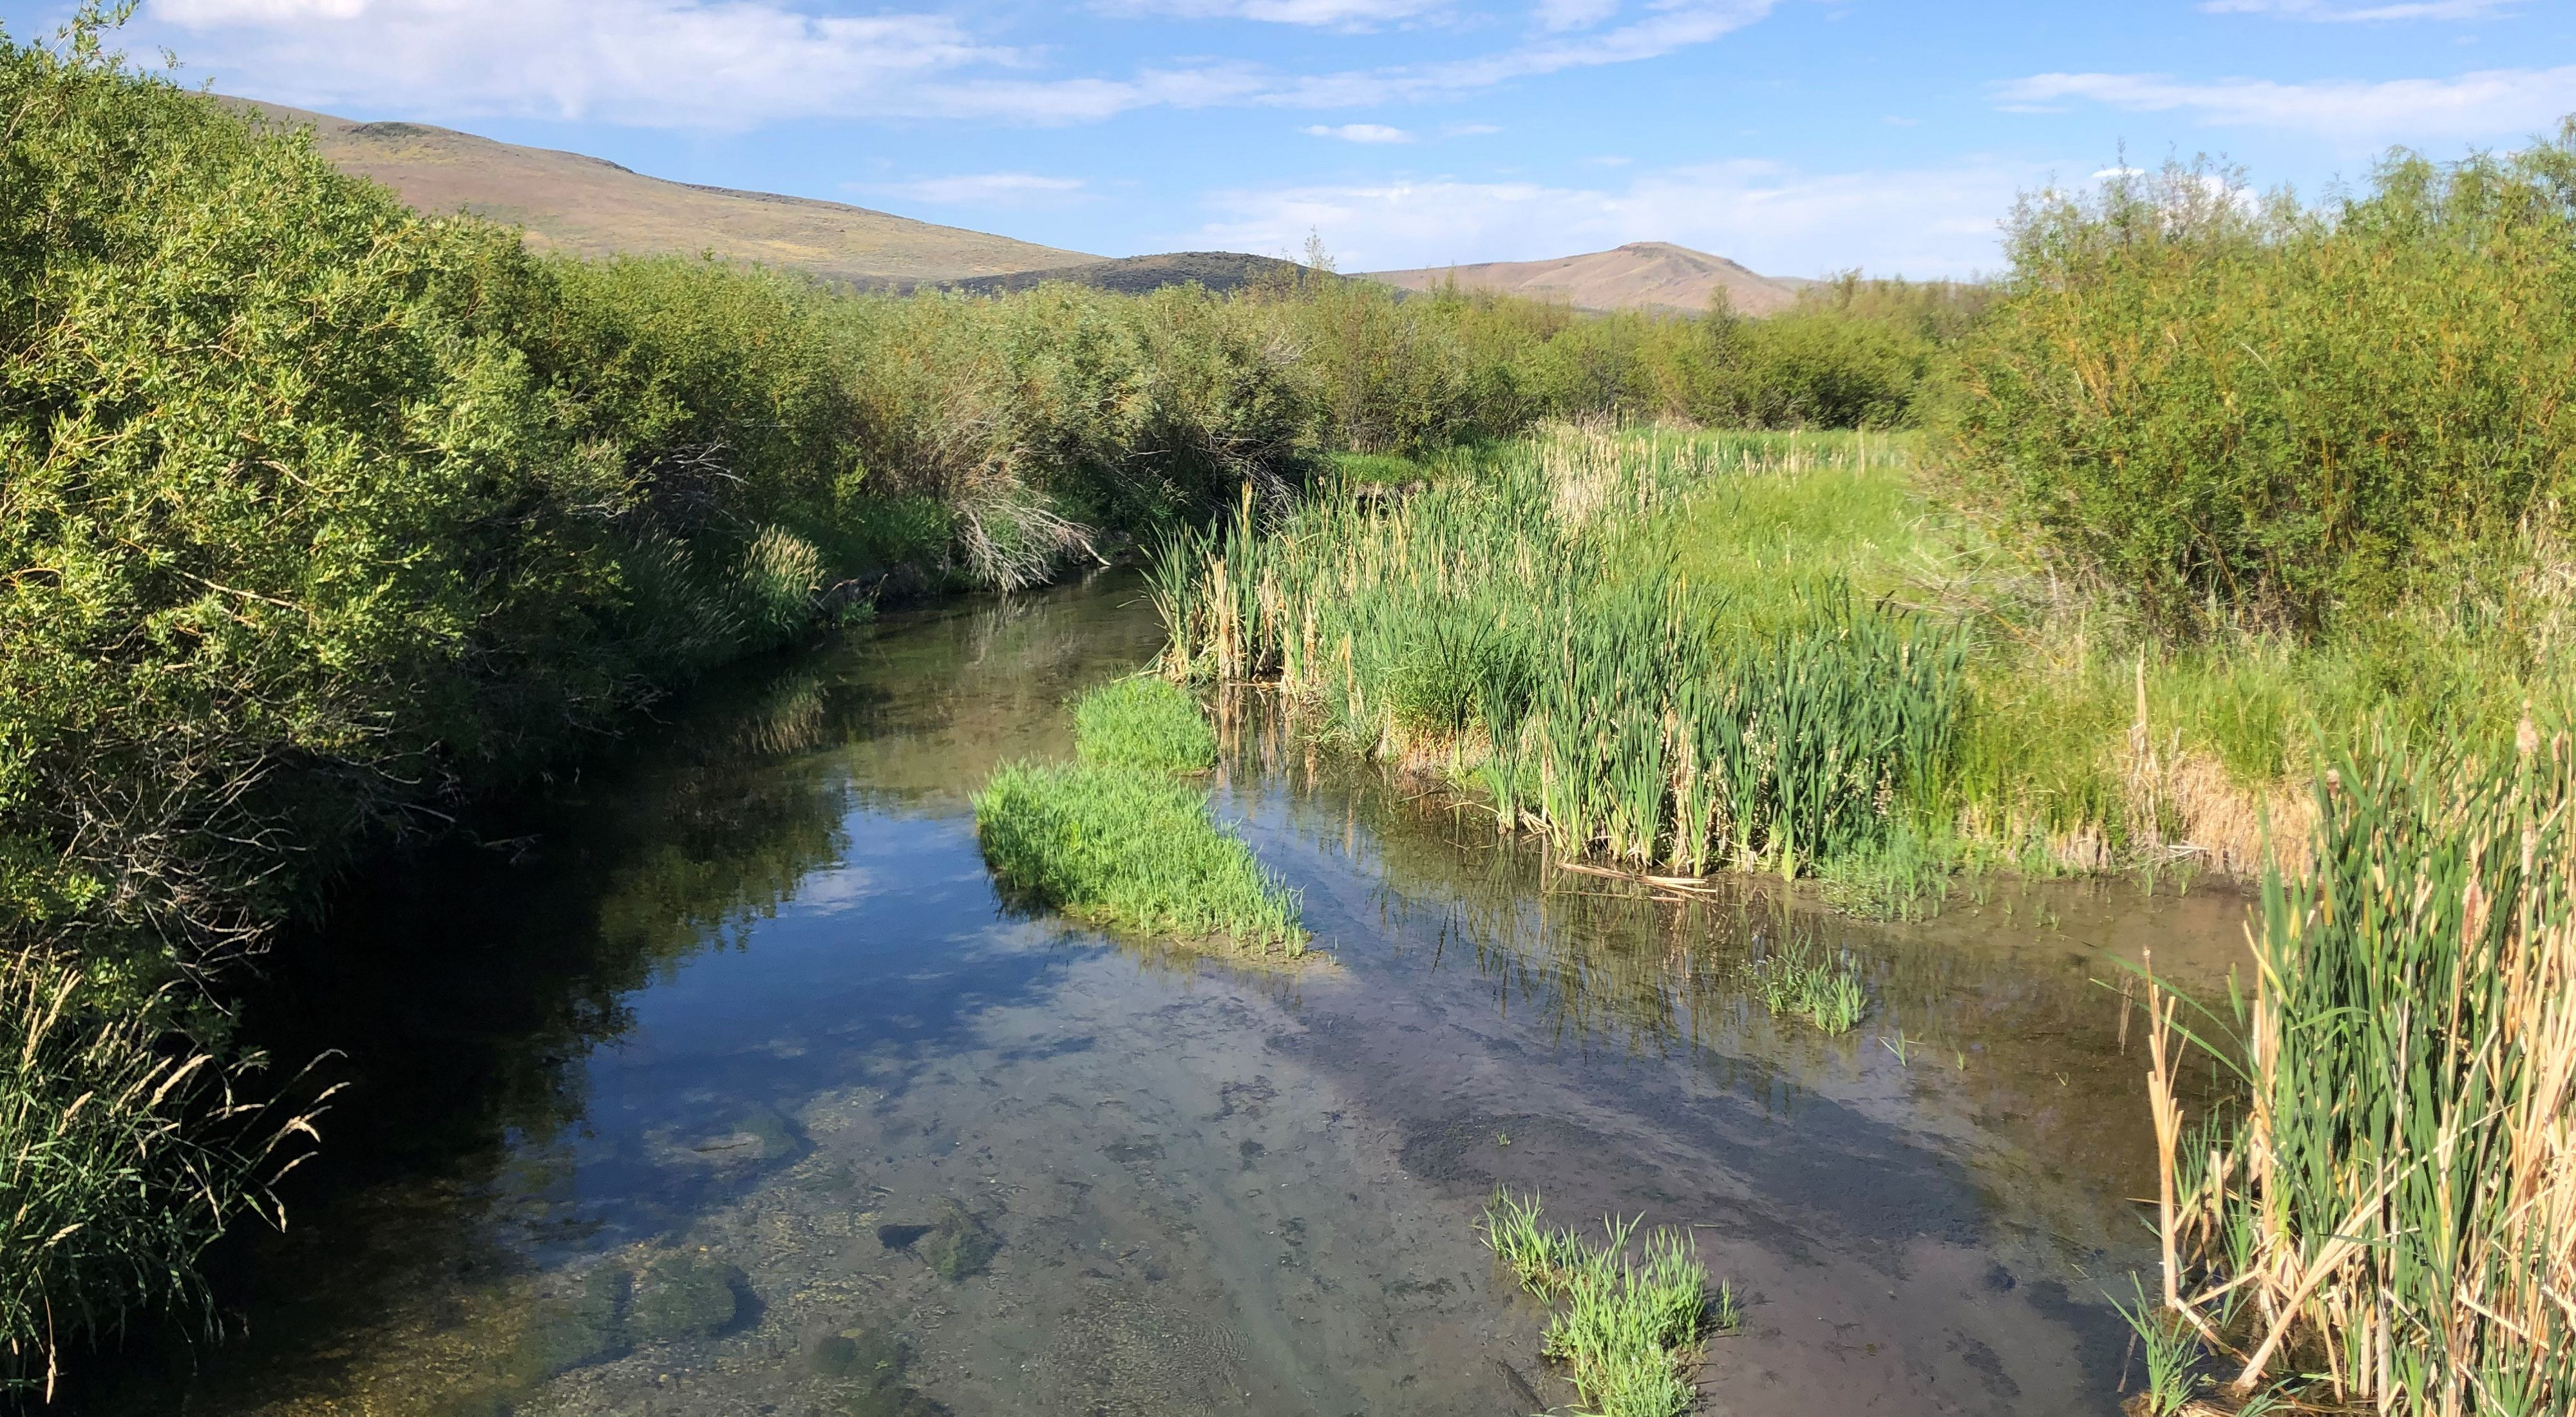 A stream meandering through willow plants with foothills in the distance.